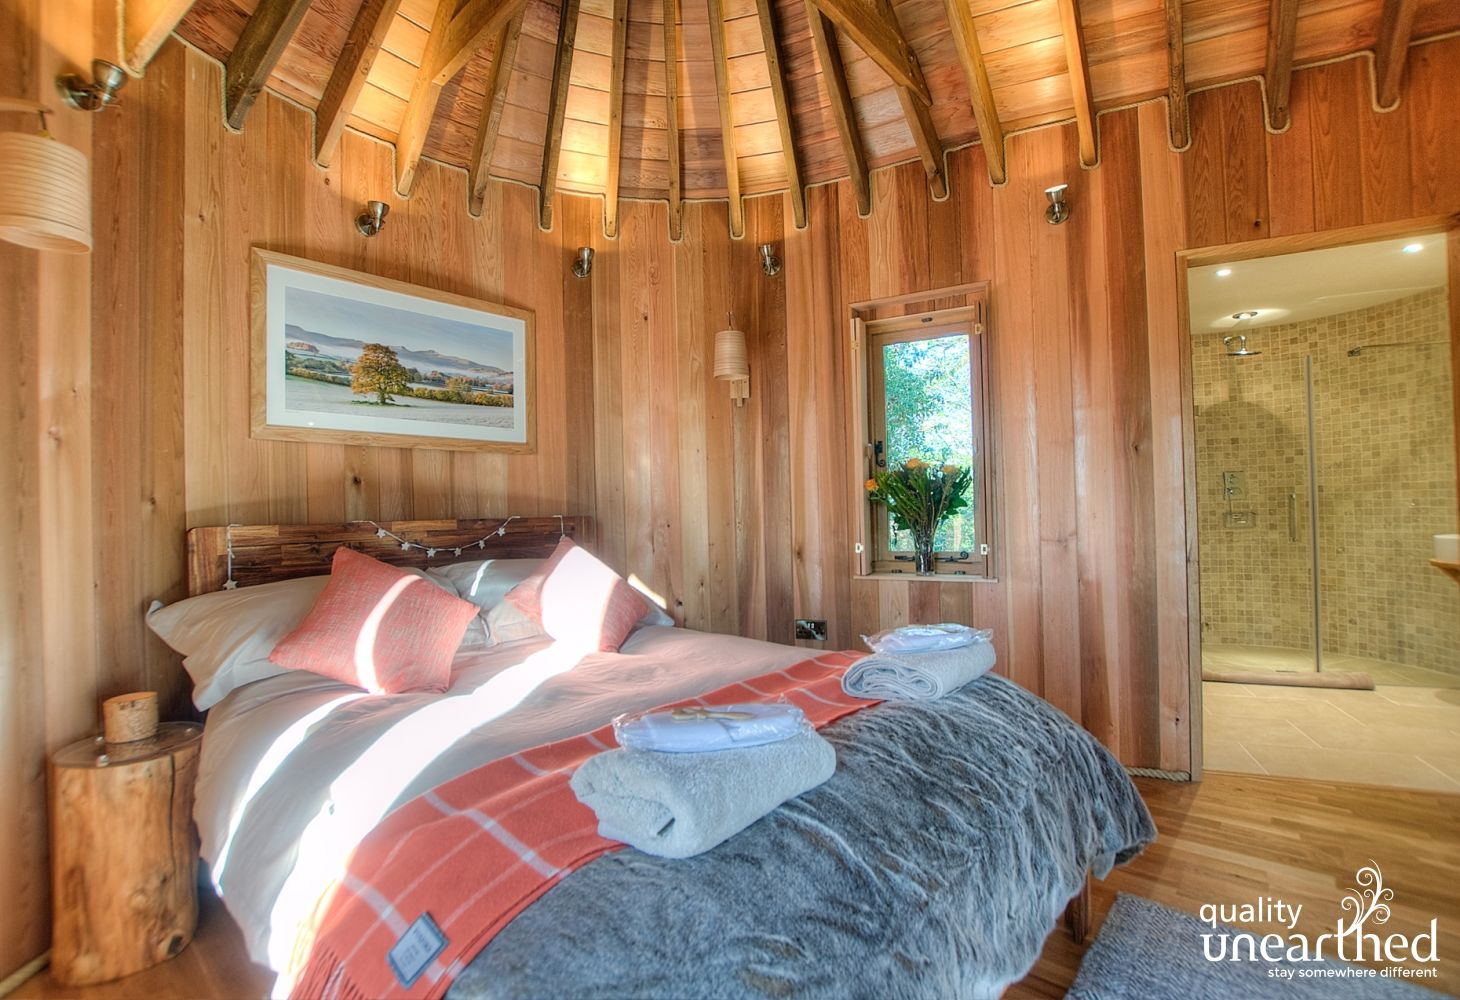 A handcrafted acacia double bed sits in a wooden treehouse with a vaulted ceiling. Doorway to shower room.